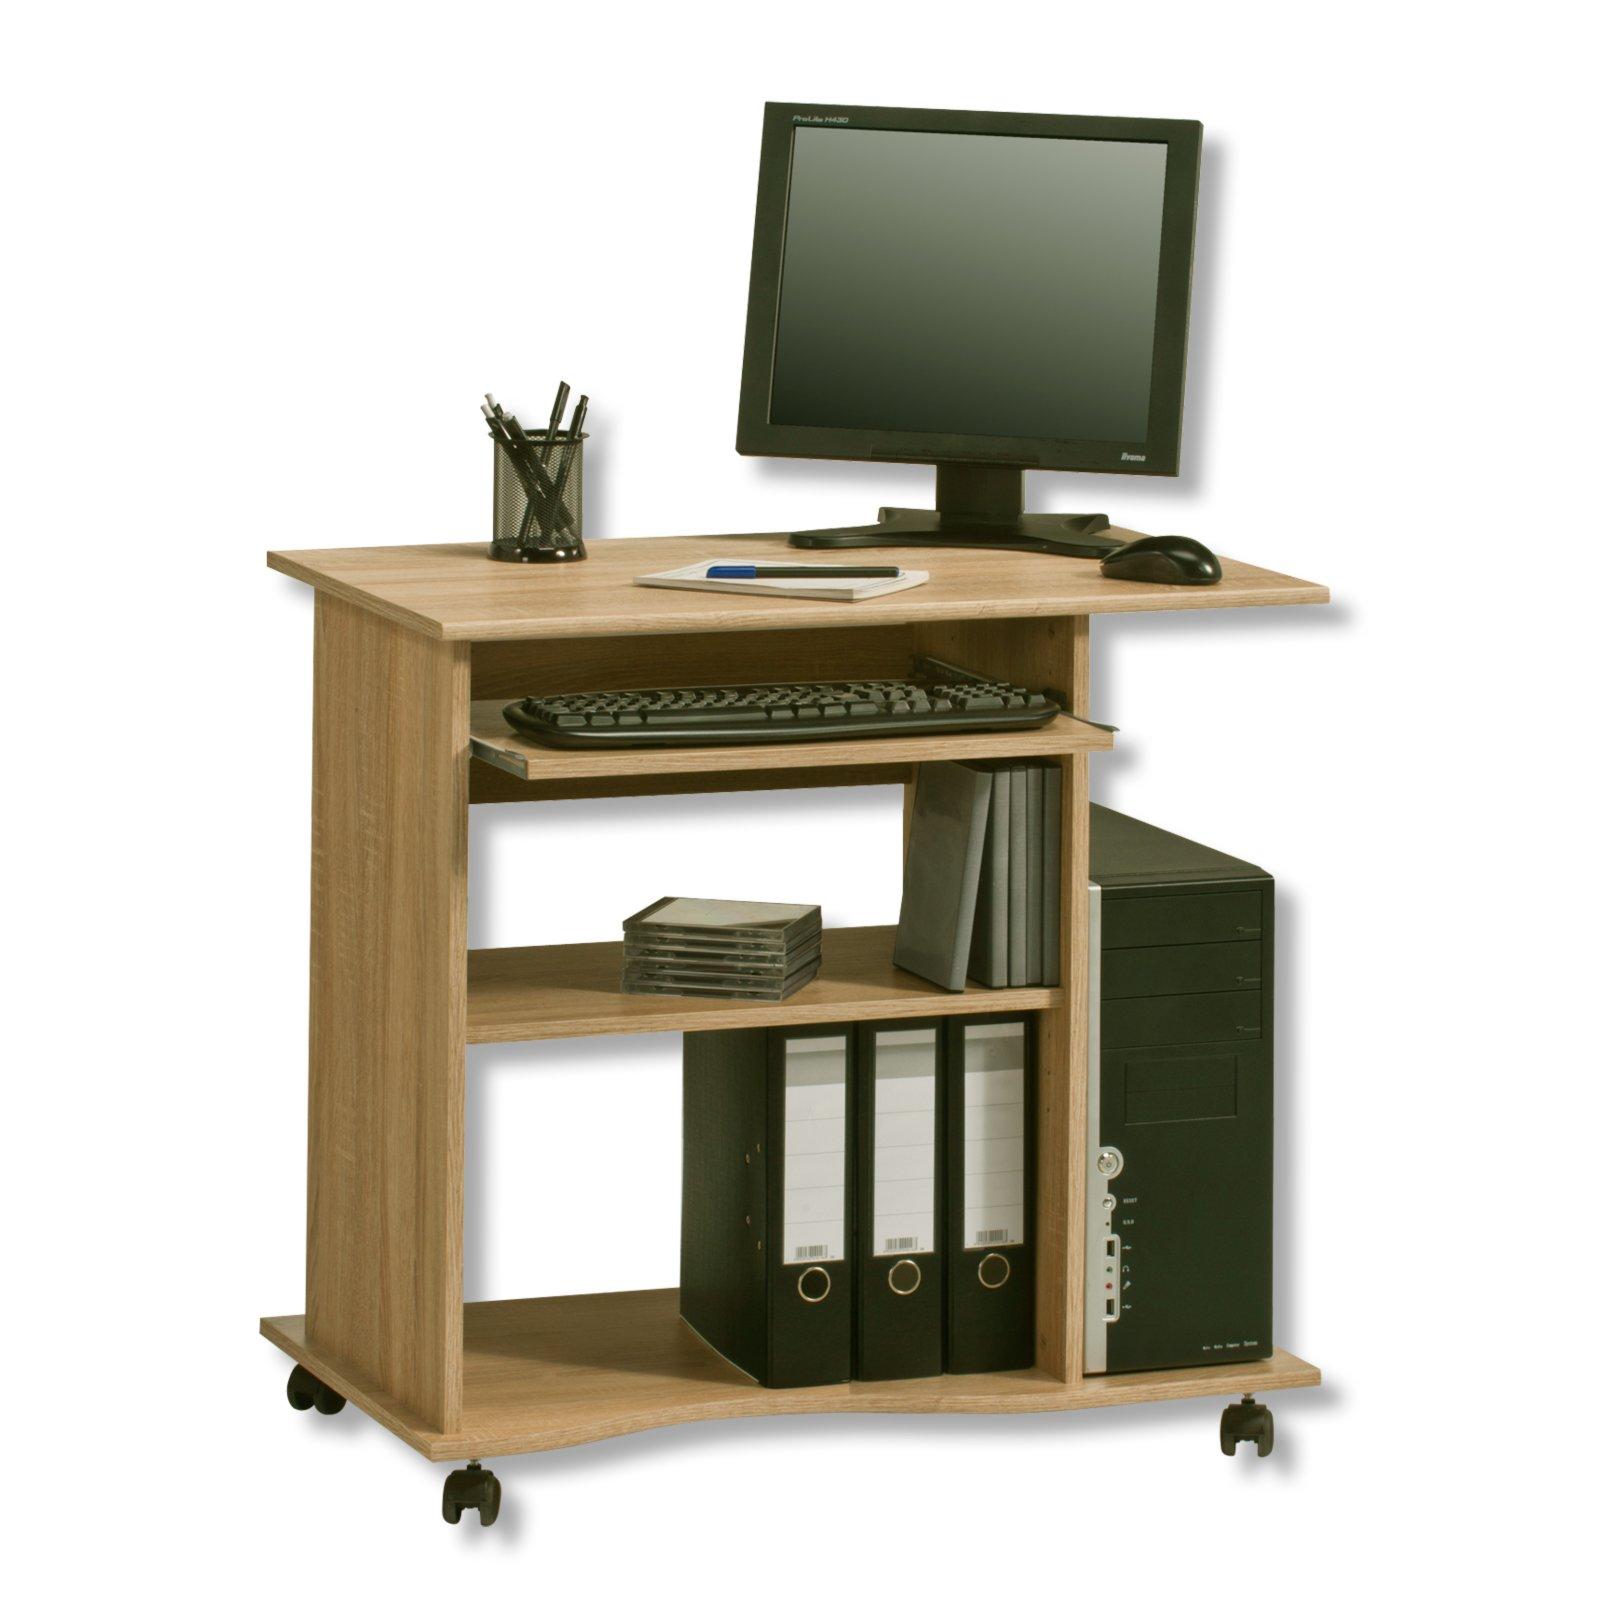 computertisch sonoma eiche 80 cm schreibtische m bel m belhaus roller. Black Bedroom Furniture Sets. Home Design Ideas